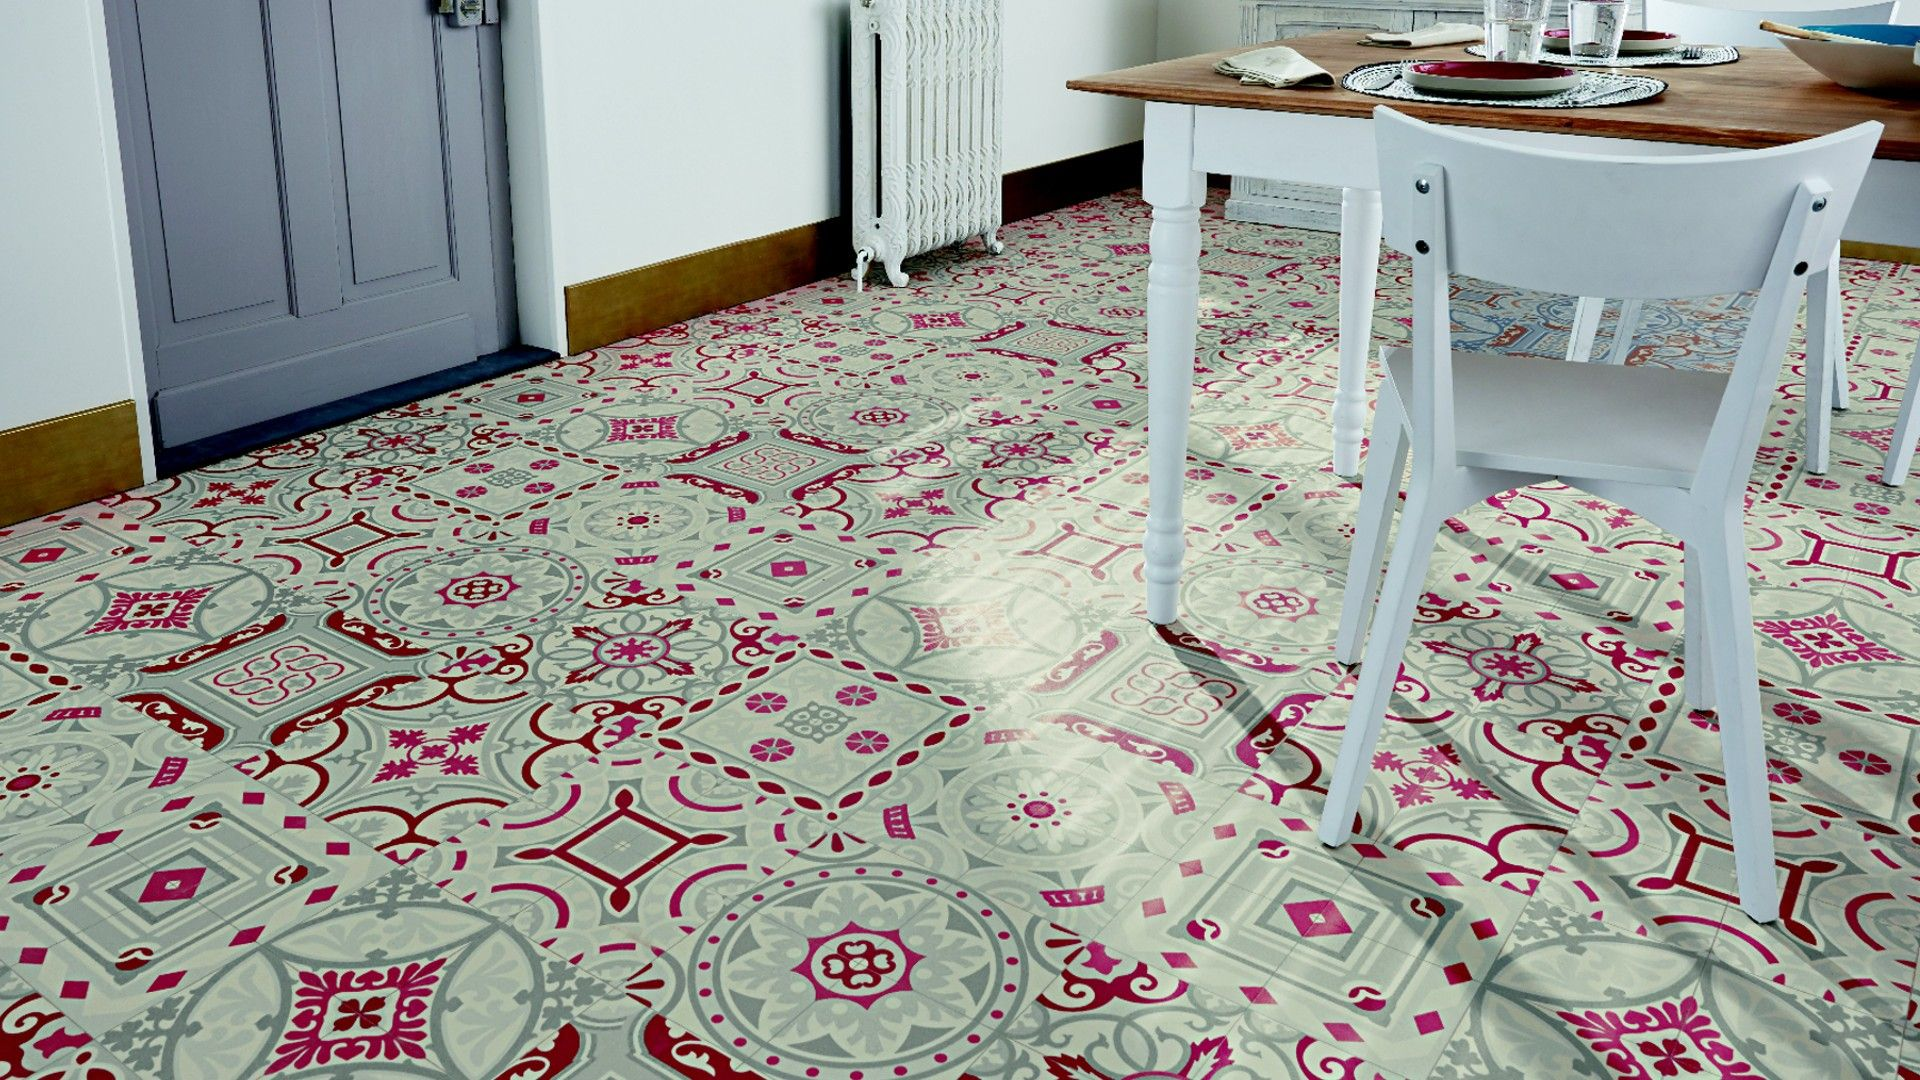 Sol vinyle happitex shalimar rouge carreaux fa ence pinterest carreaux - Carrelage ciment saint maclou ...